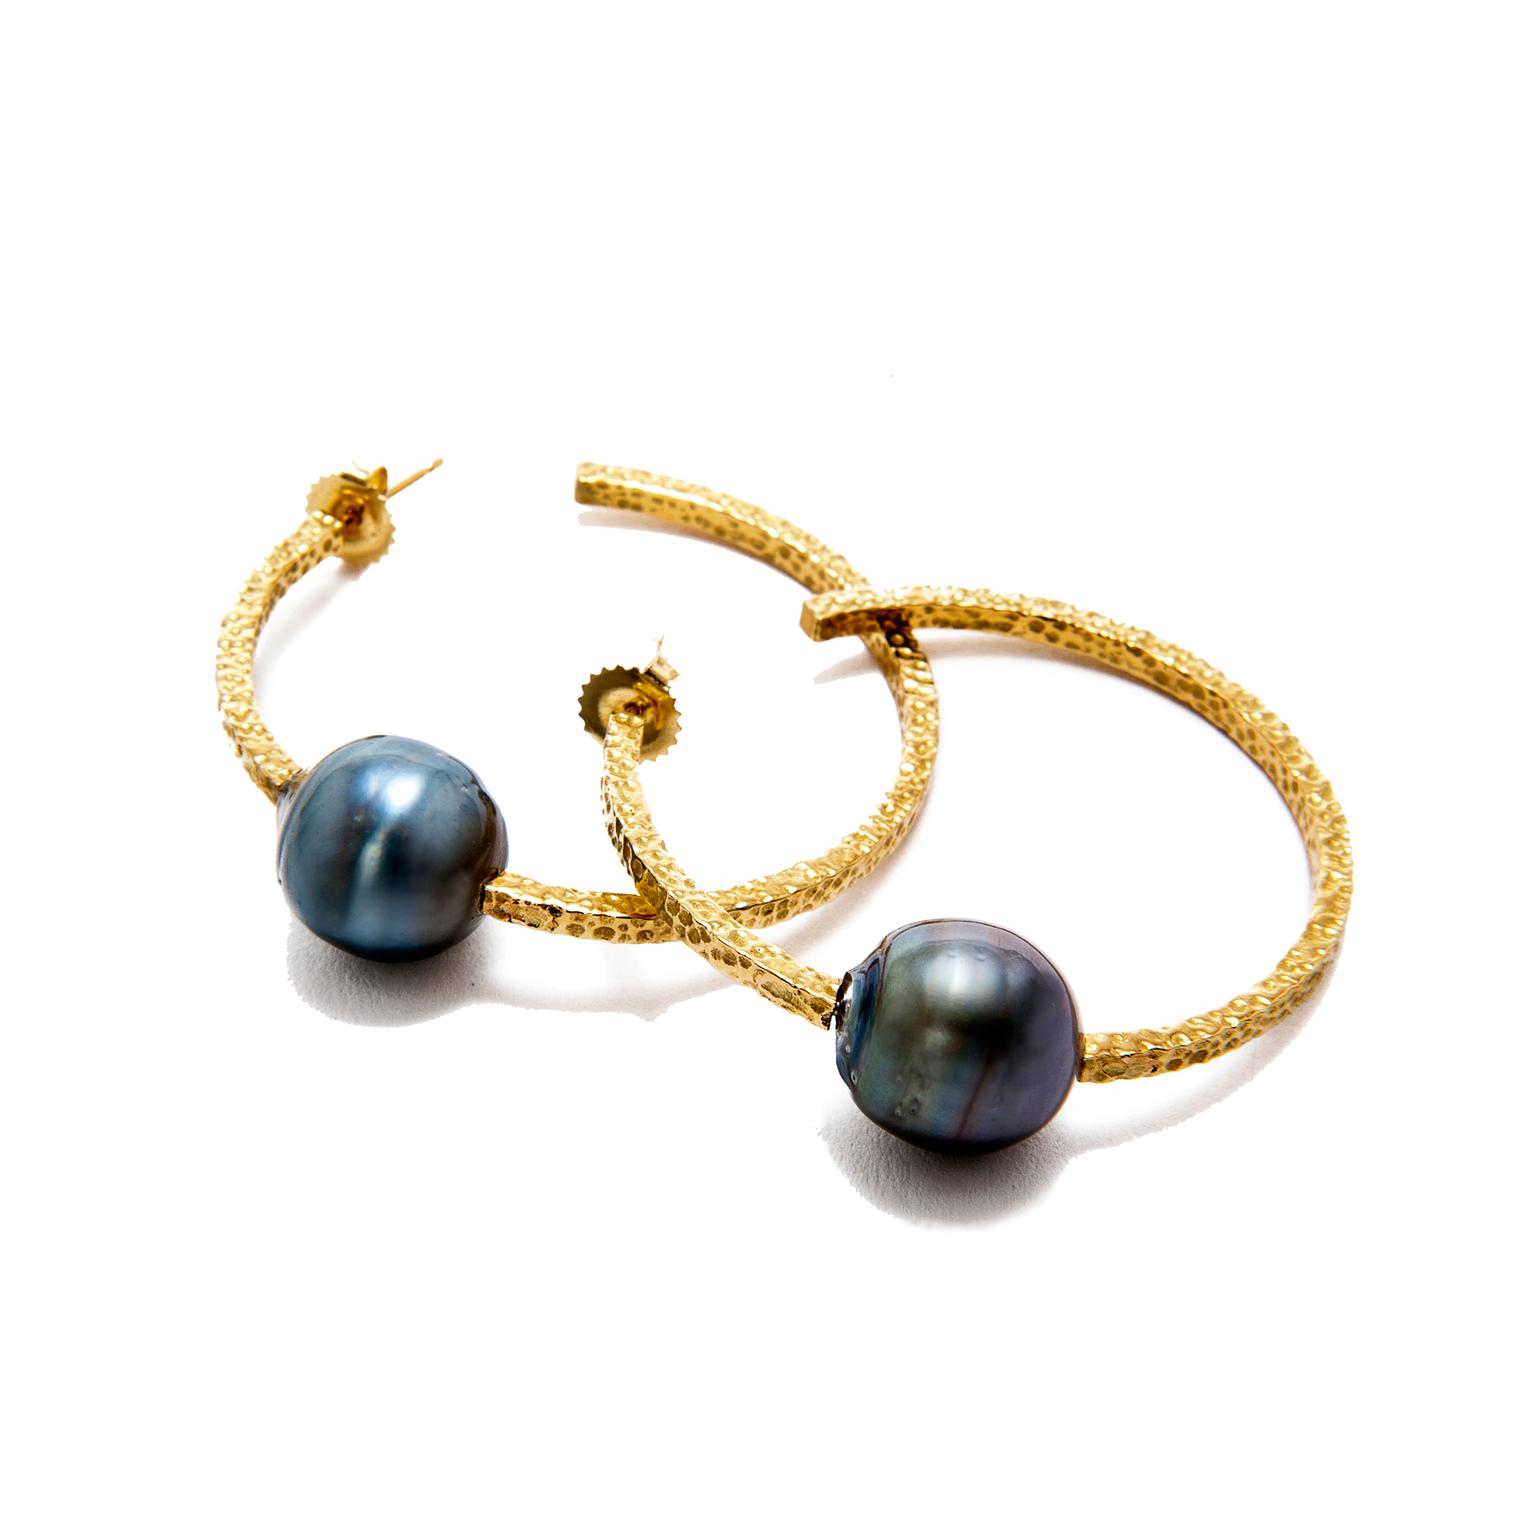 Jordan Alexander Tahitian pearl earrings